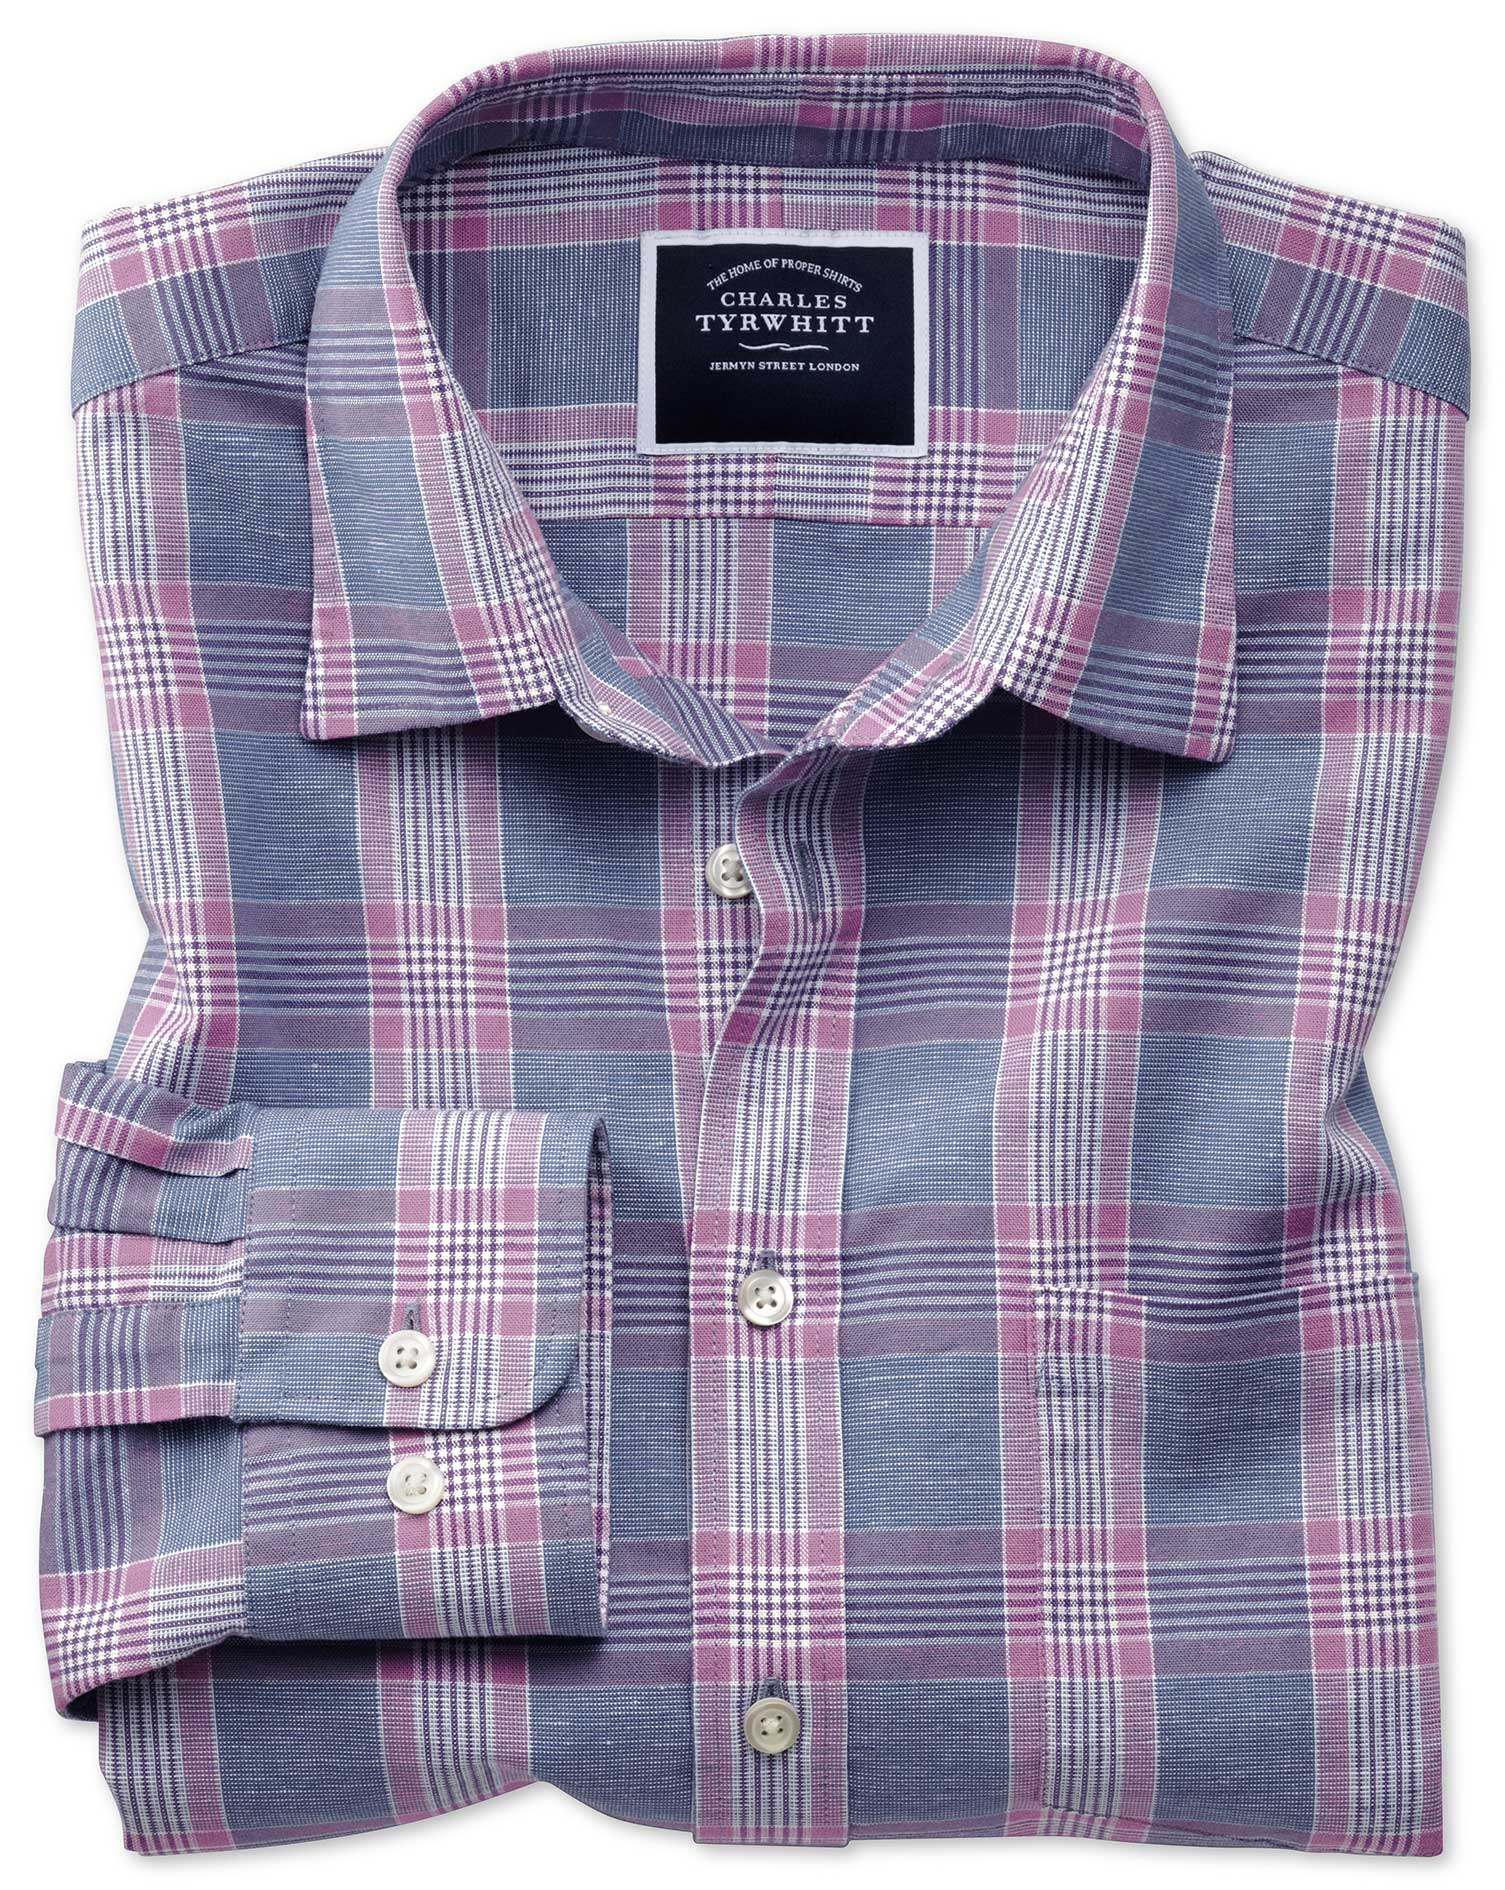 Slim Fit Cotton Linen Blue and Purple Check Shirt Single Cuff Size Small by Charles Tyrwhitt